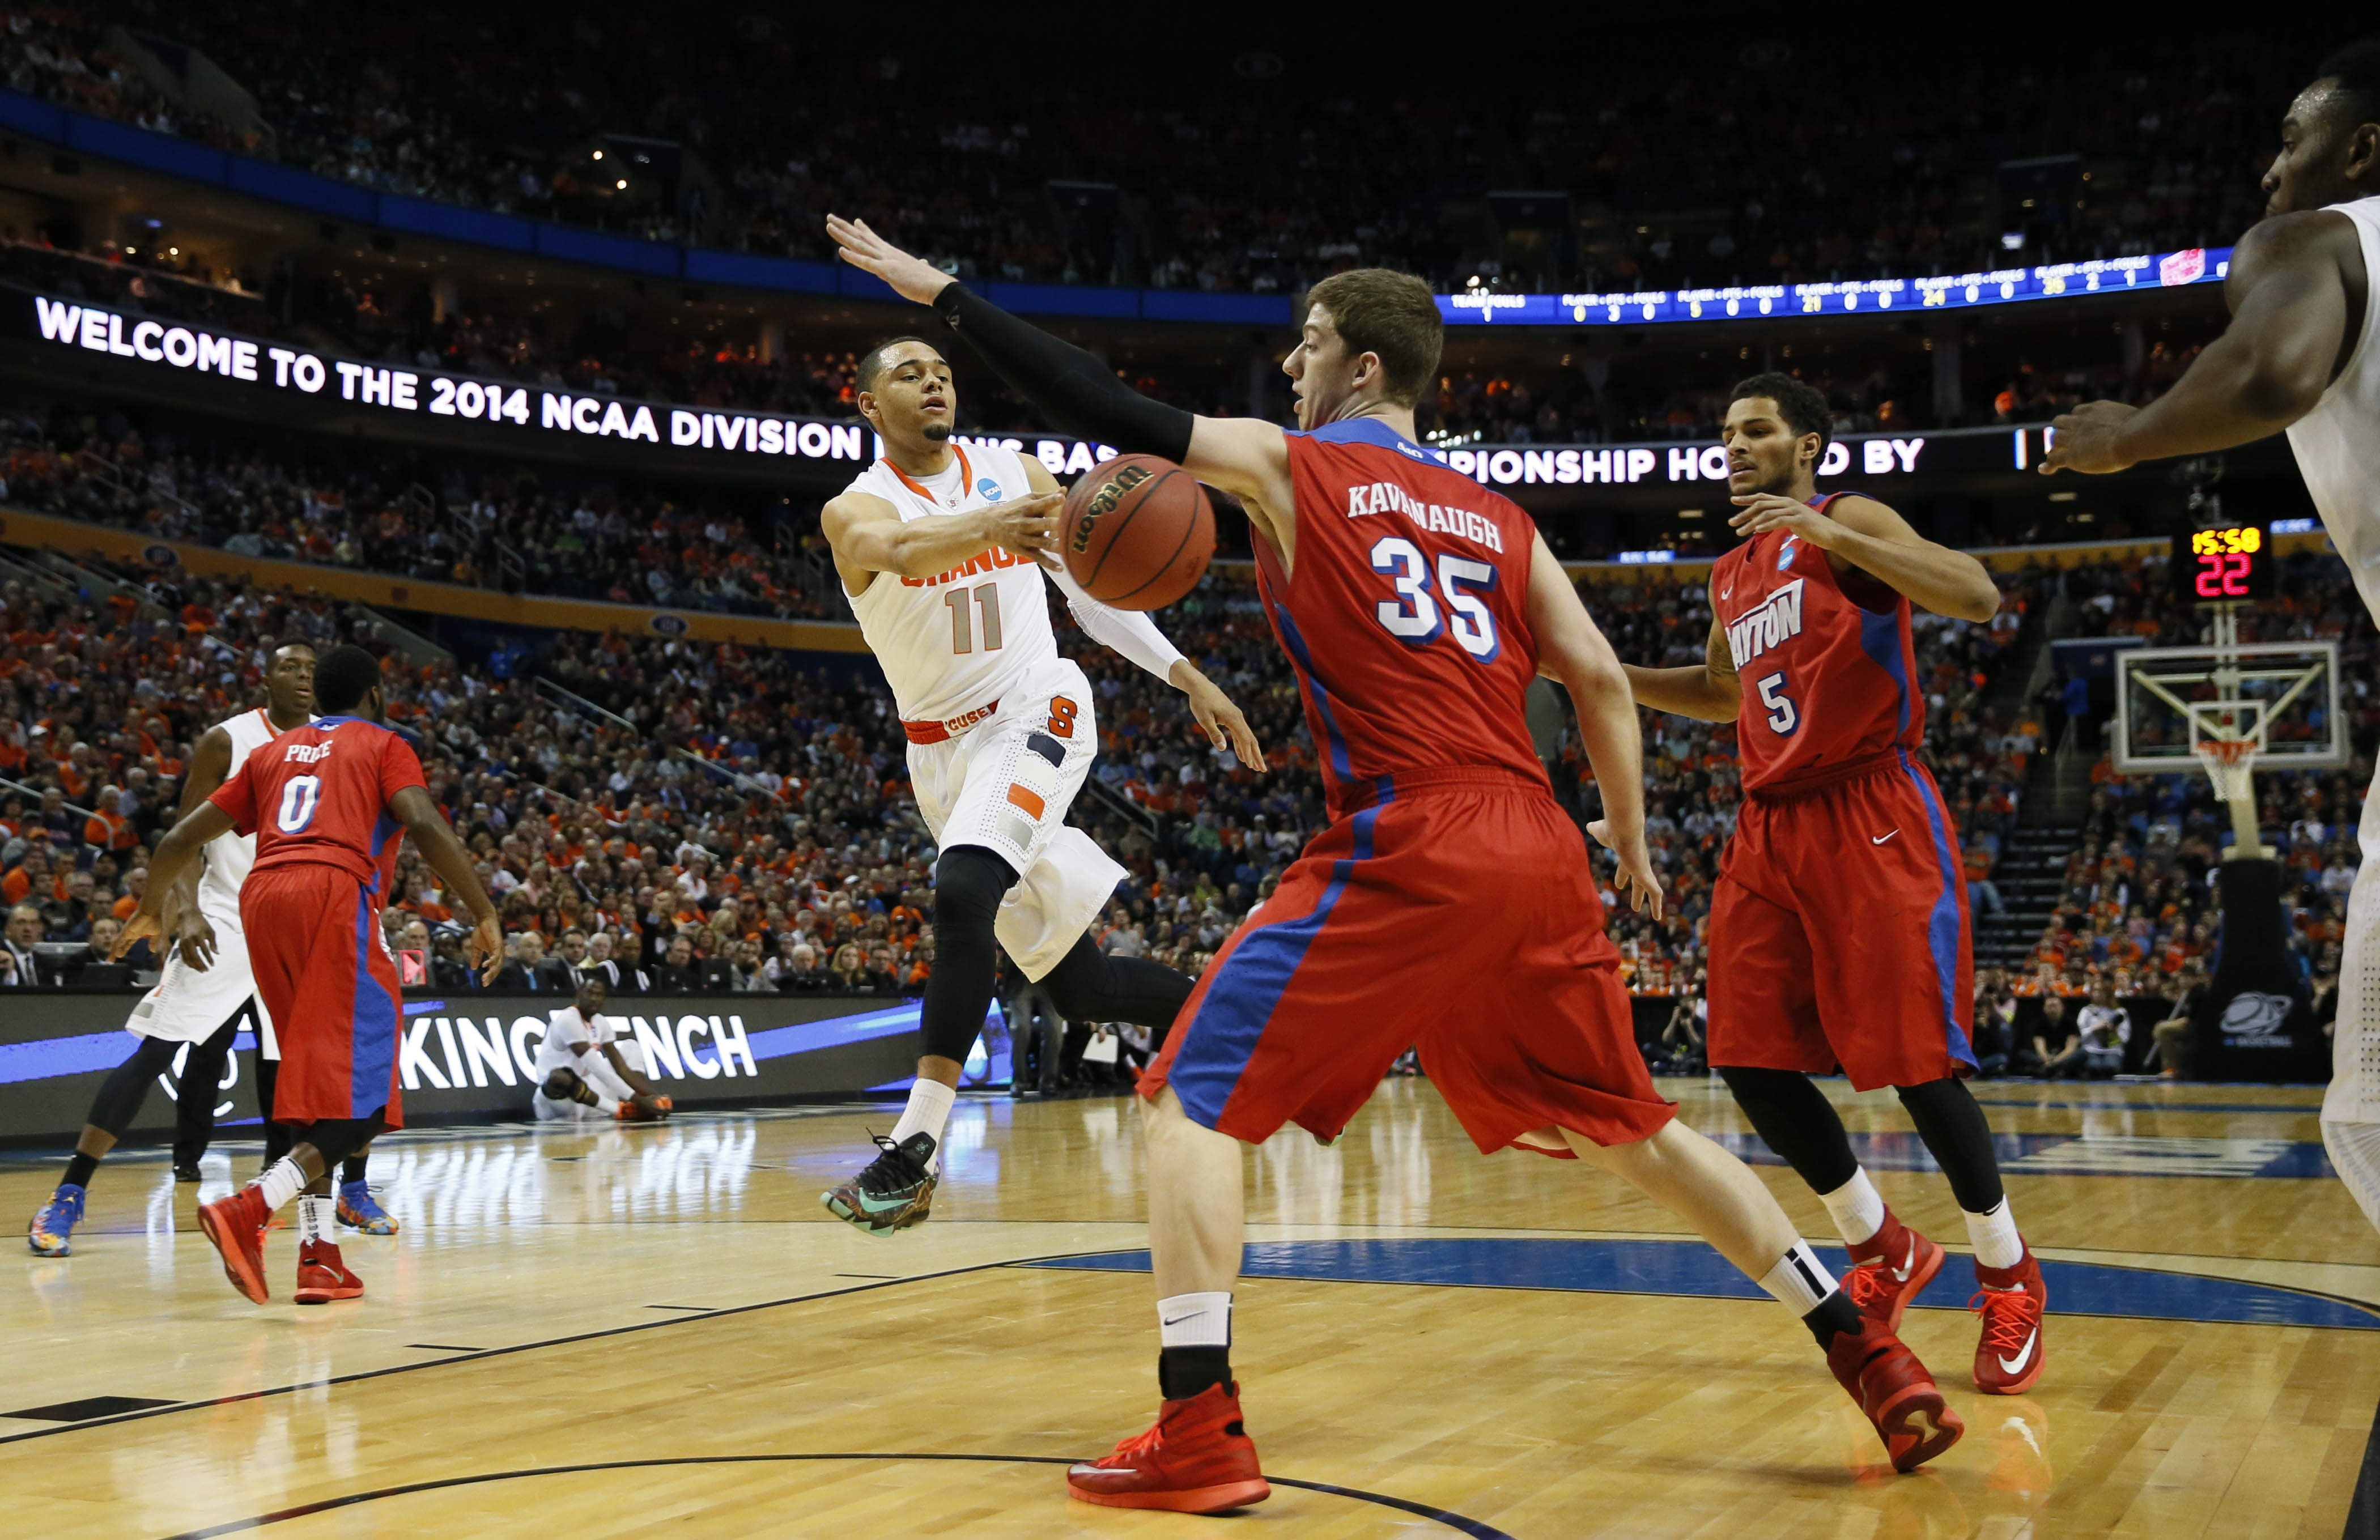 Syracuse played Dayton in 2014, the last time the NCAA Tournament stopped in Buffalo.(Harry Scull Jr./Buffalo News file photo)